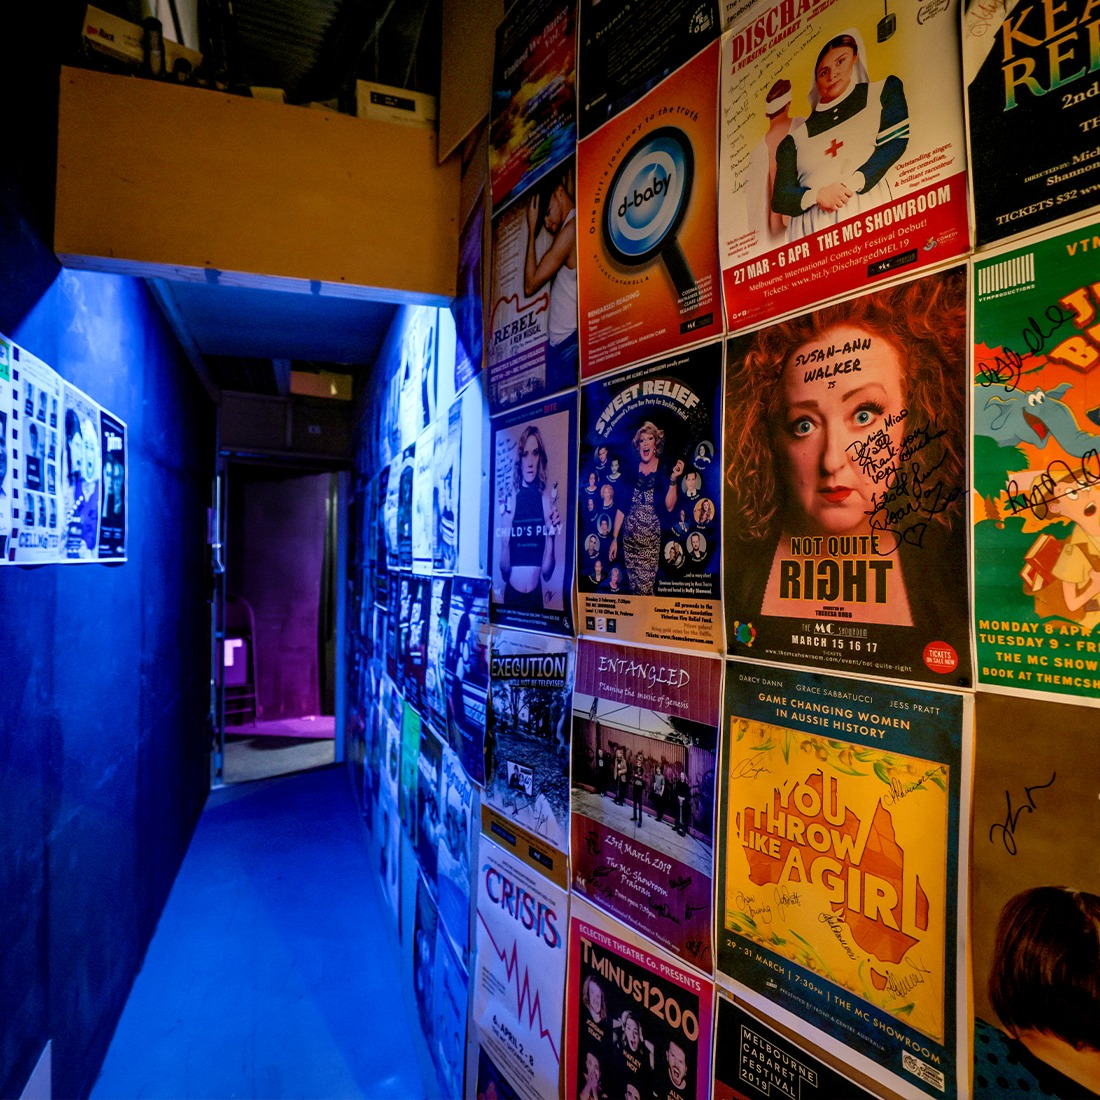 A hallway decorated with theatre posters